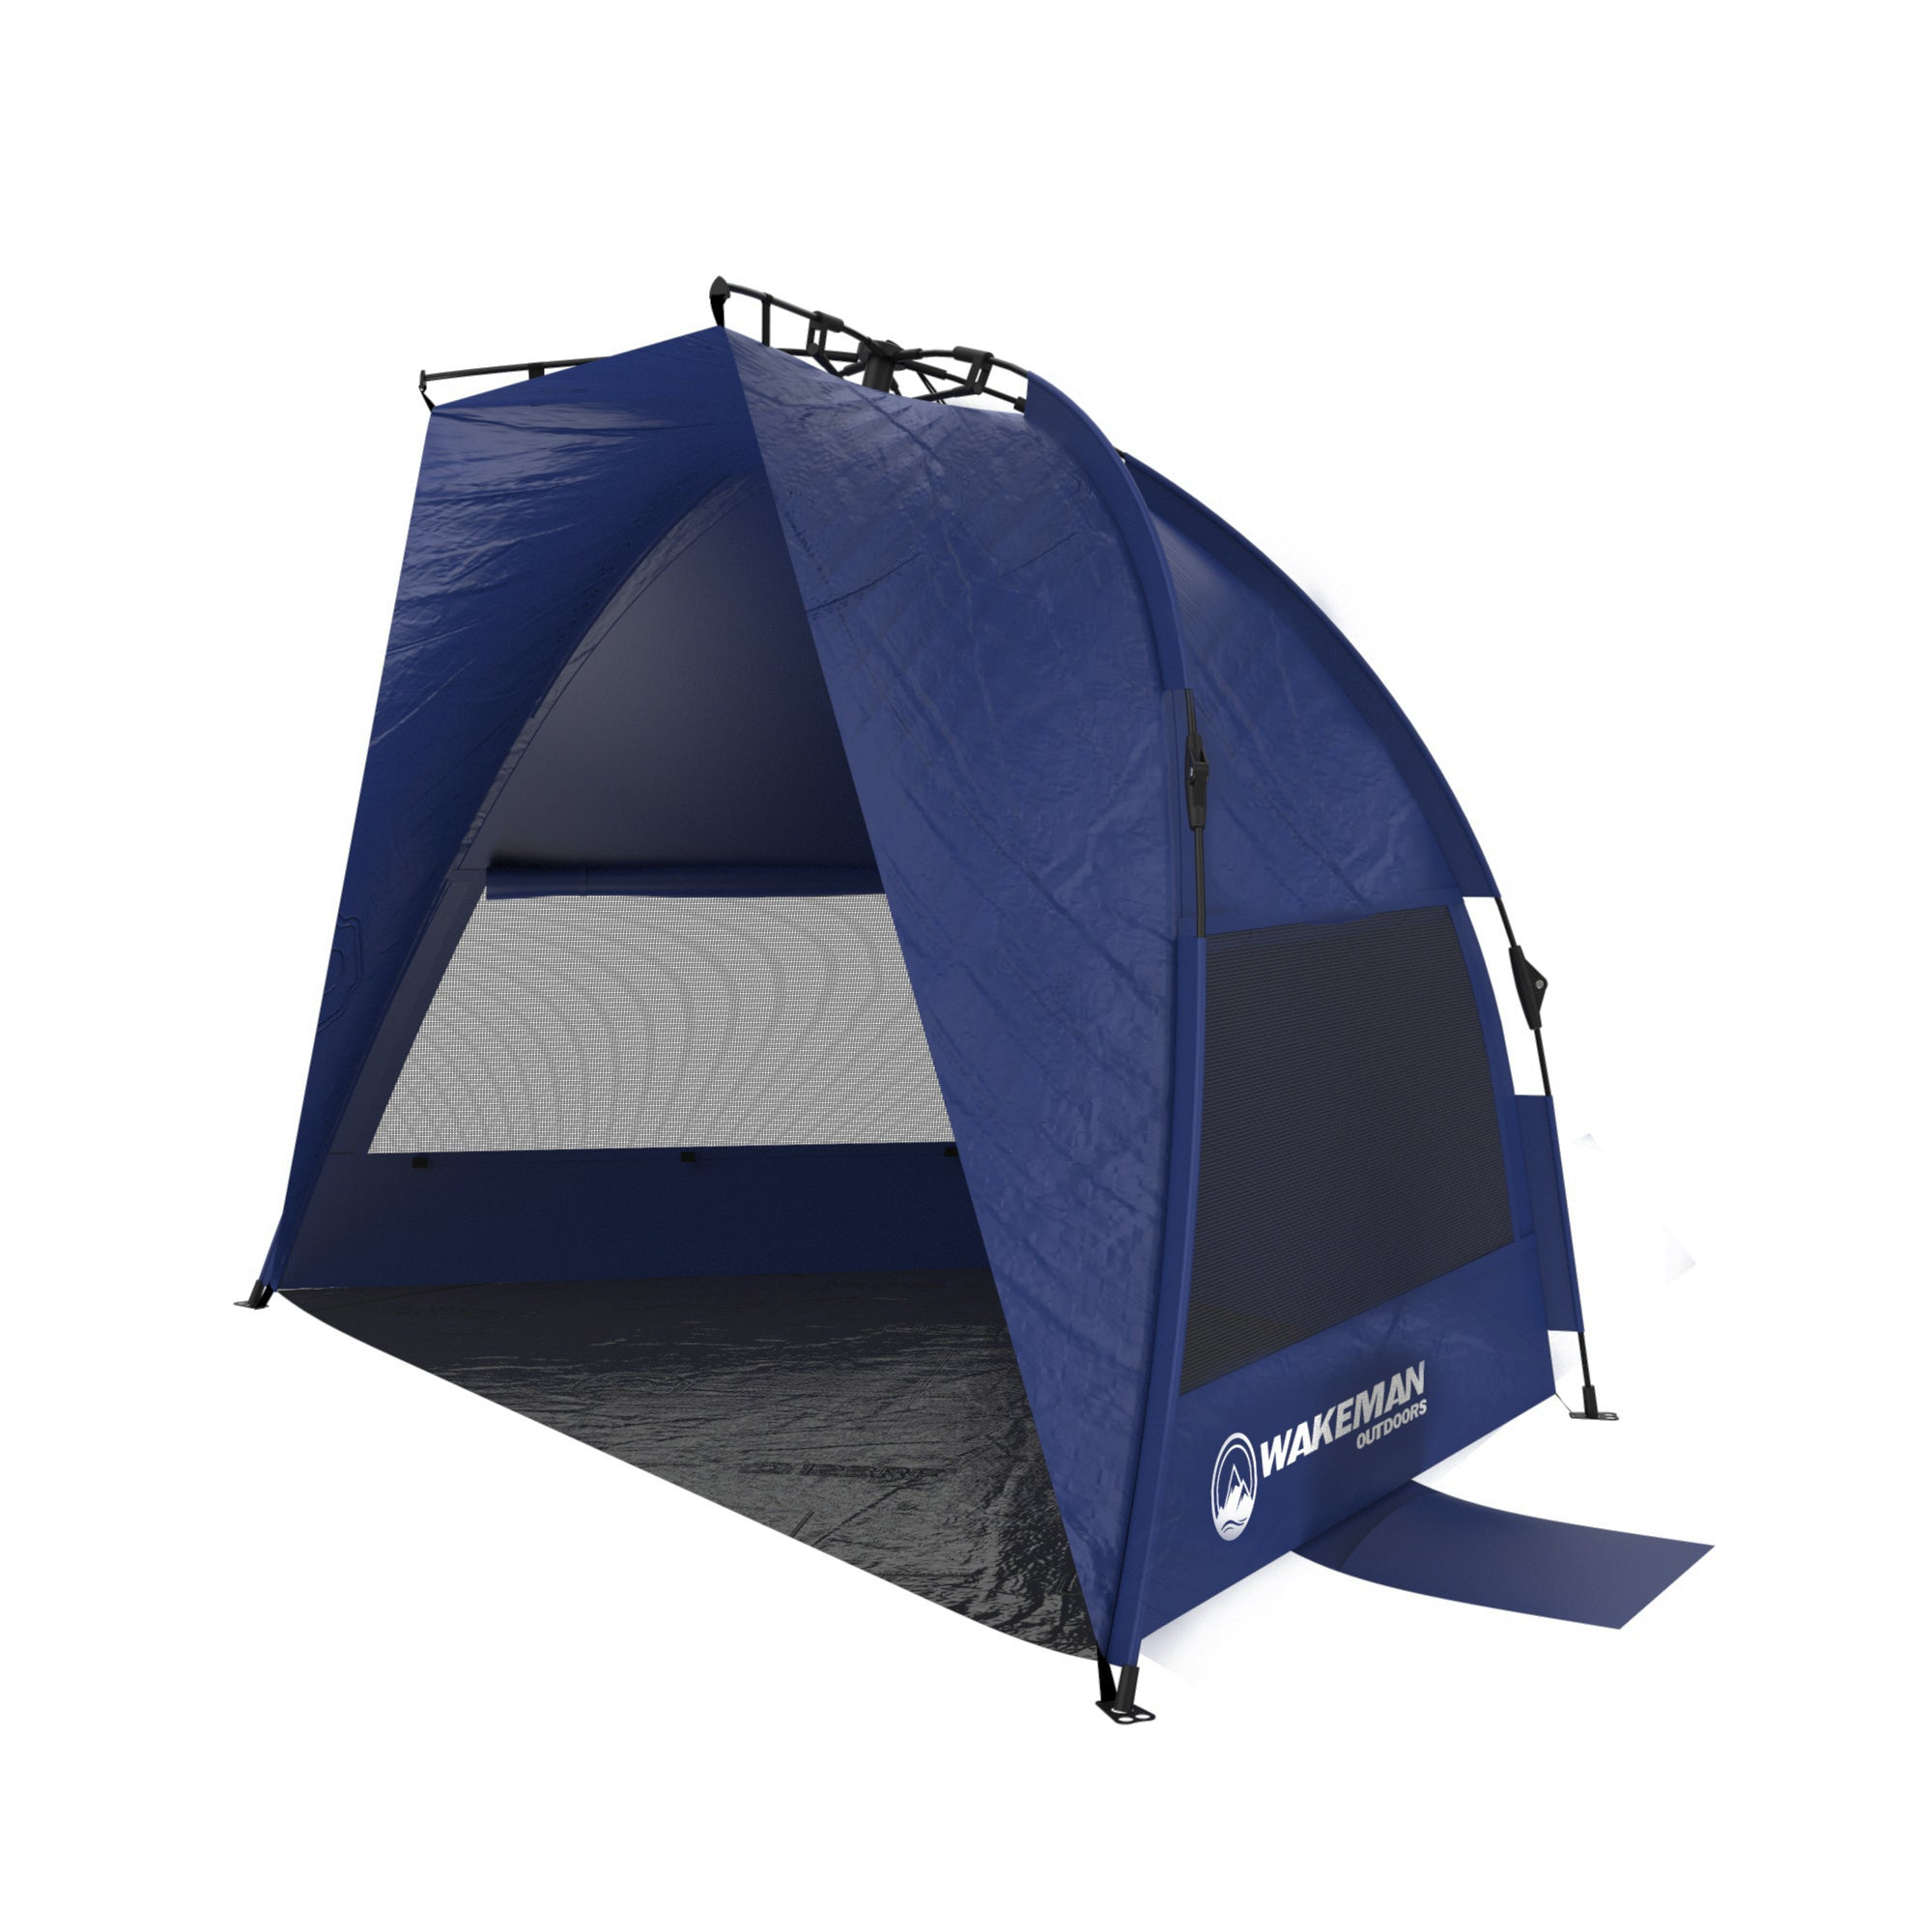 super popular e229a 8cb73 Pop Up Beach Tent- Shade with UV Protection, Water and Wind Resistant,  Instant Set Up and Carry Bag By Wakeman Outdoors